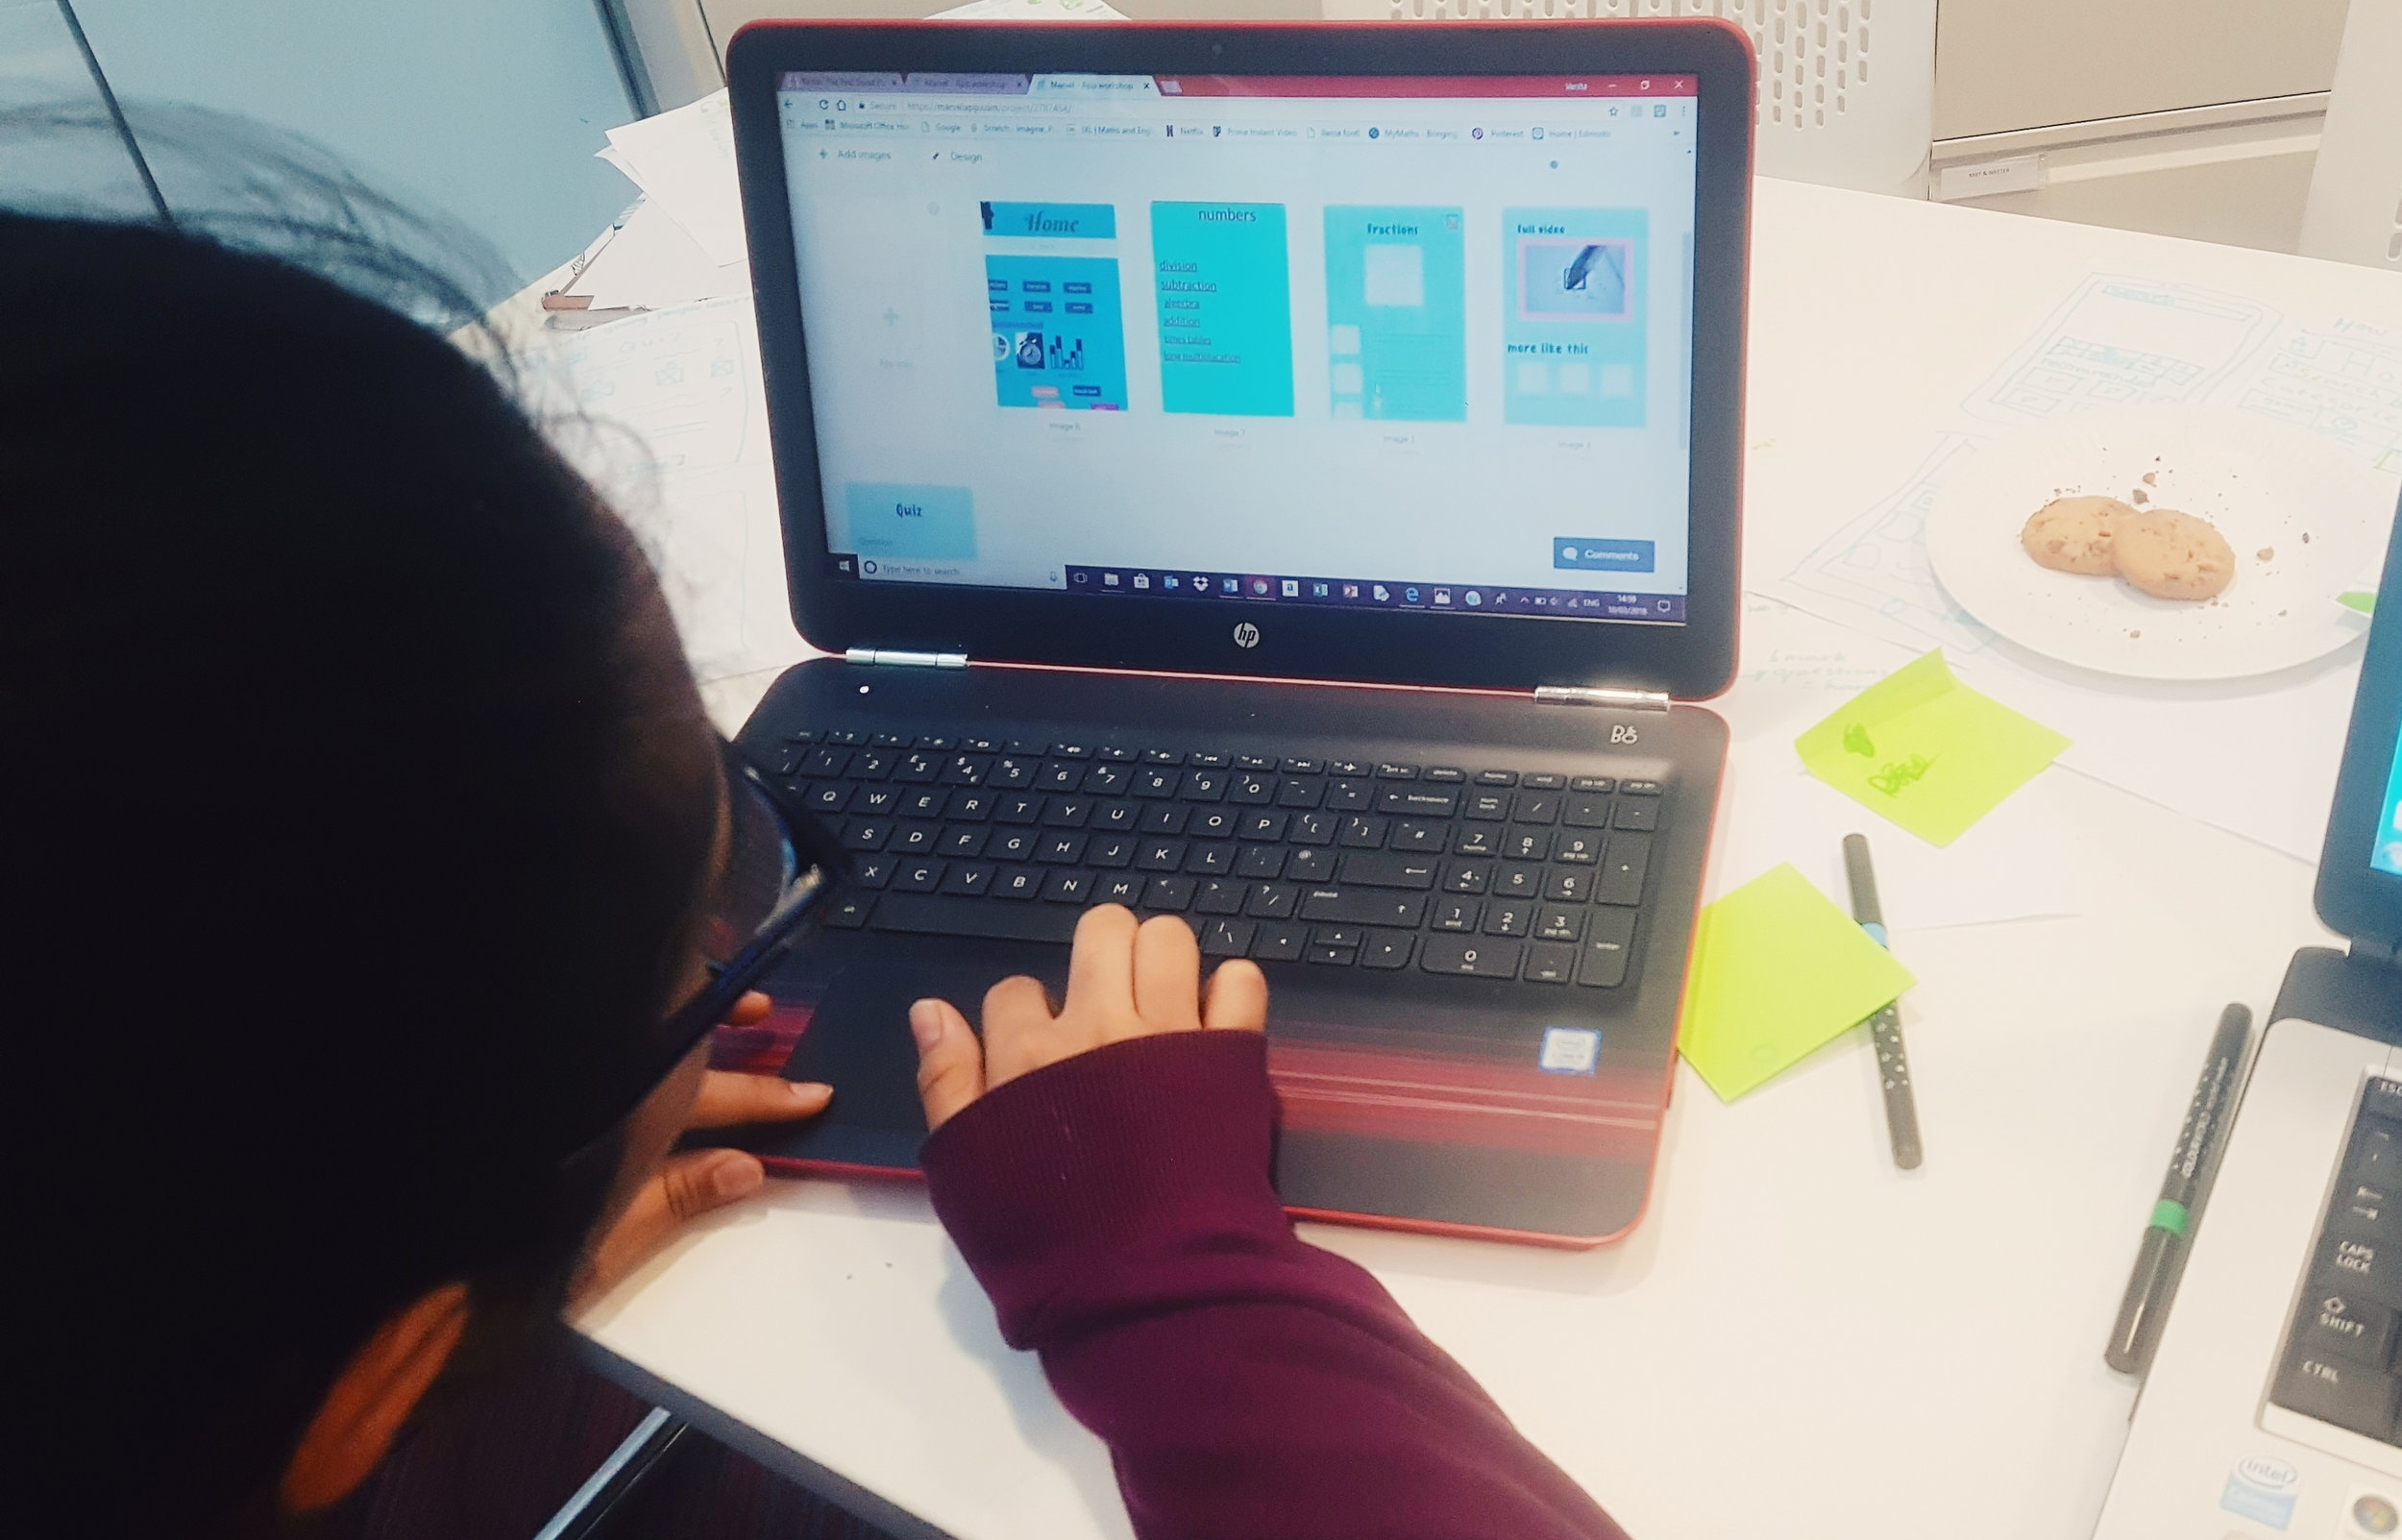 Team MyMaths: Designing an interactive prototype based on the designs they sketched as a team.